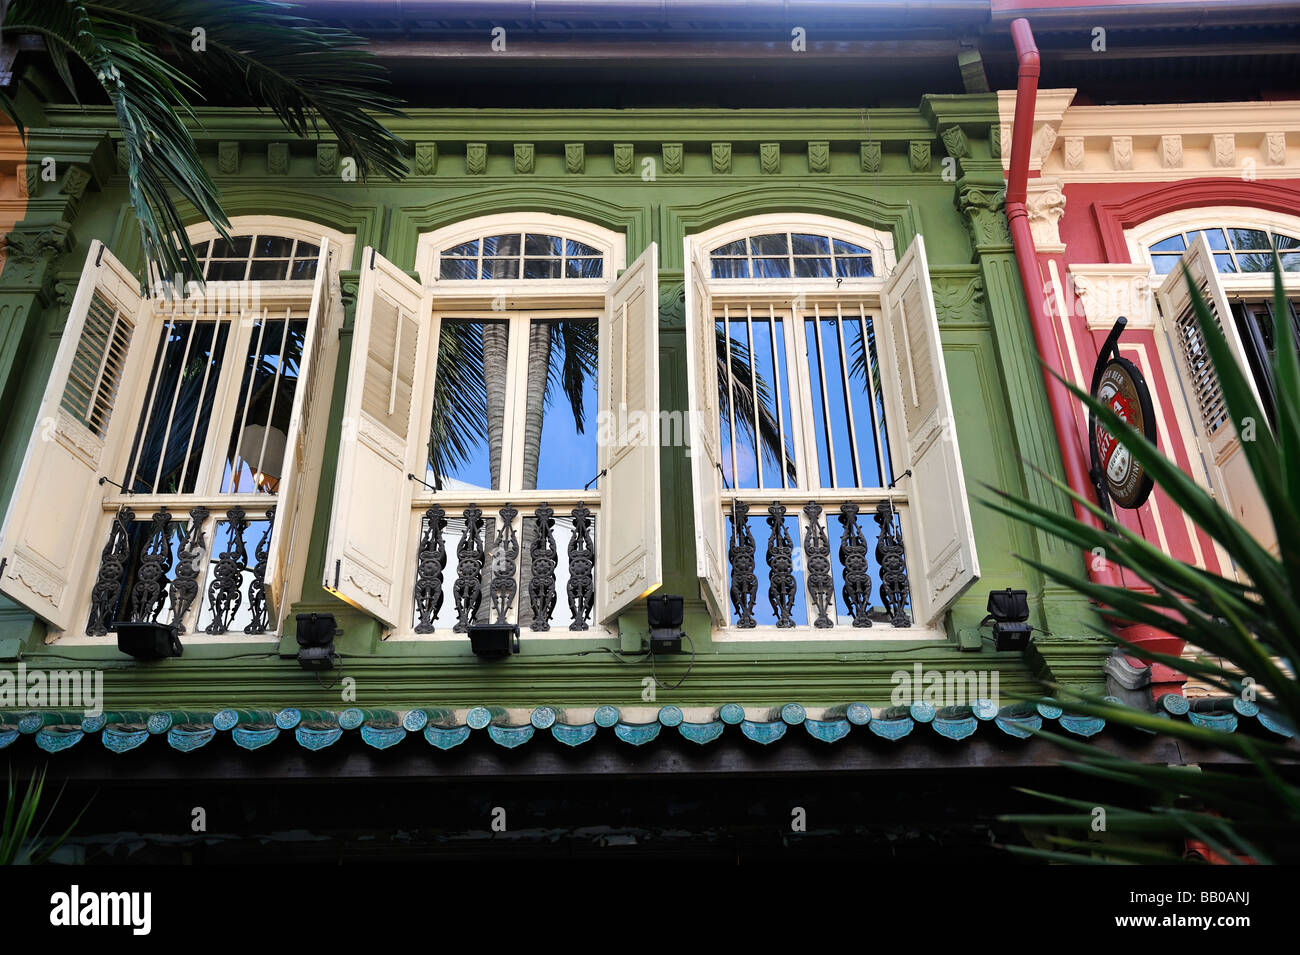 shuttered windows on restored houses in historic Emerald Hill, Singapore - Stock Image